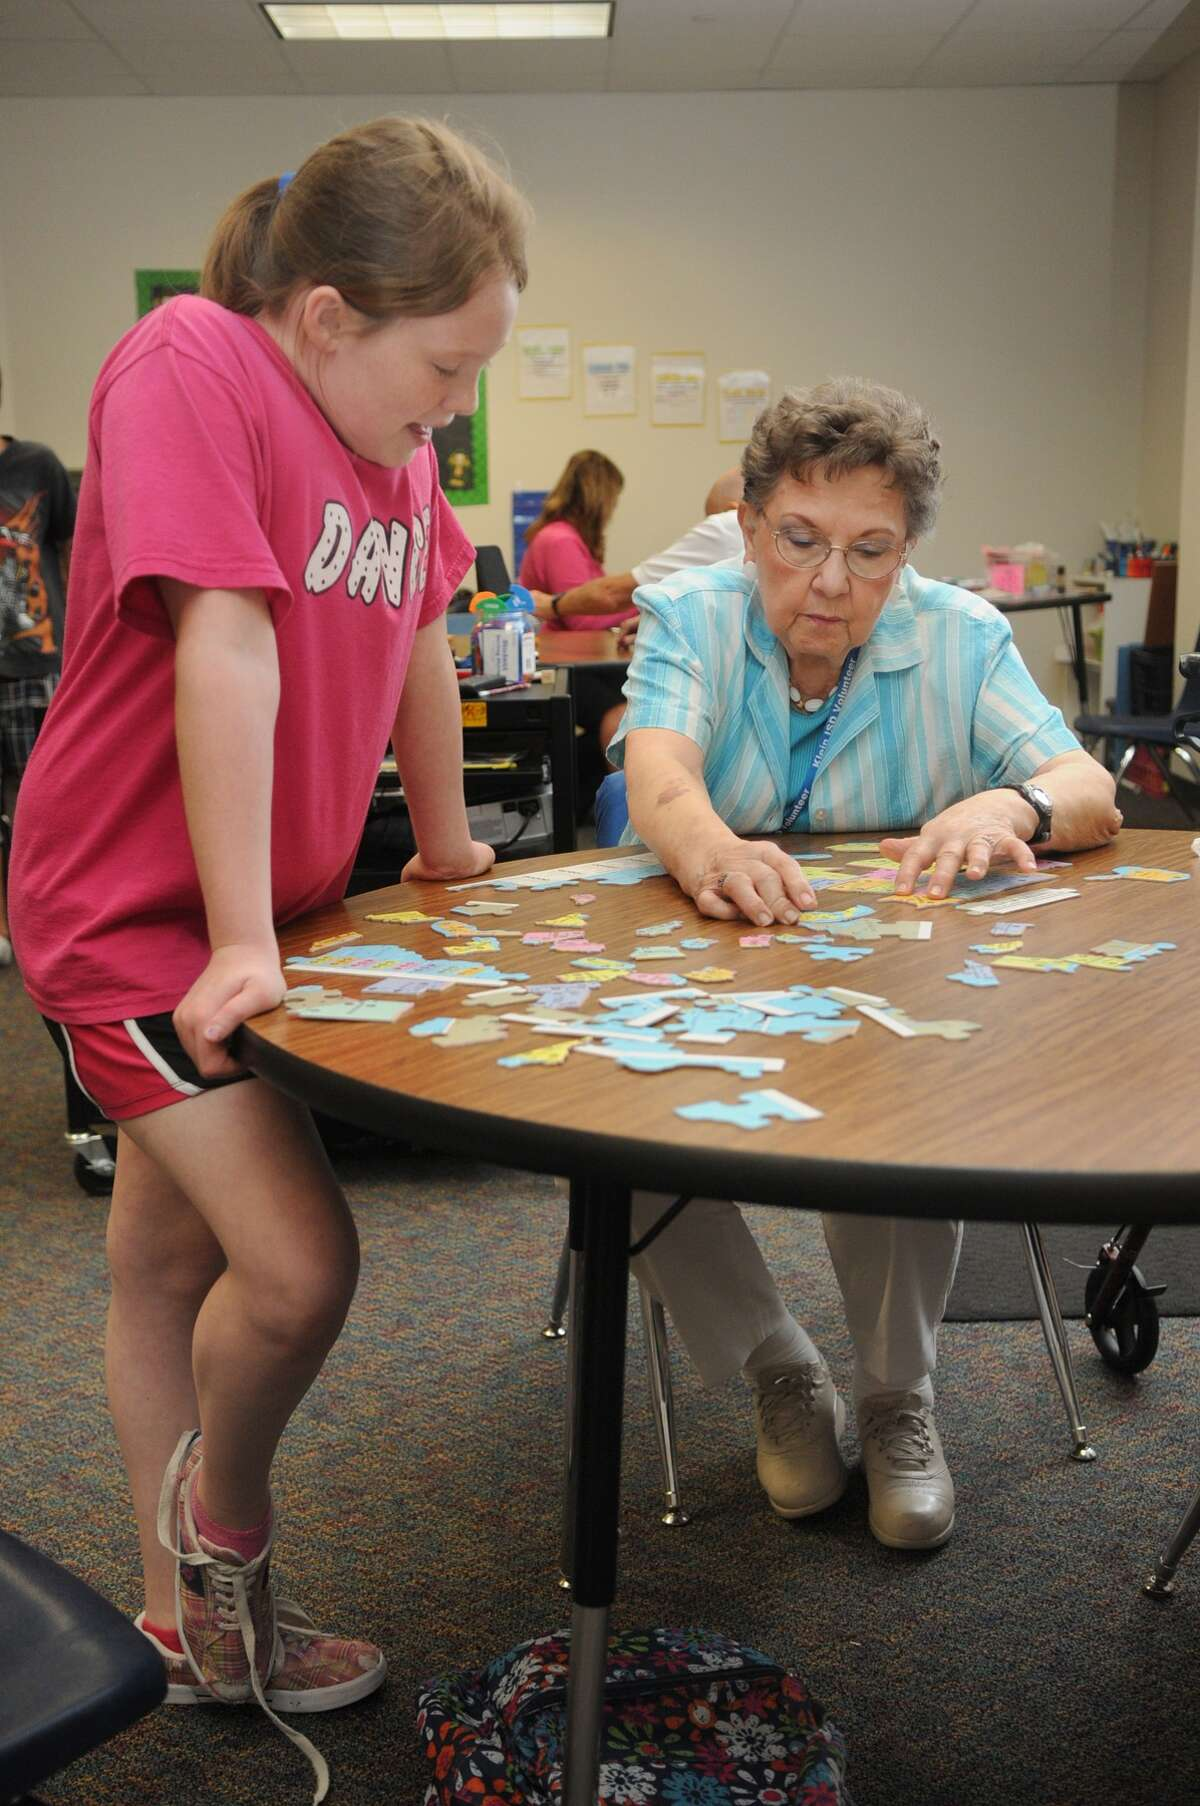 Natalie Soph, 9, from left, a fourth-grader, and Ellen Curfman, 82, team-up on a puzzle of the United States during their Grand Pals mentoring session at Frank Elementary in Spring.